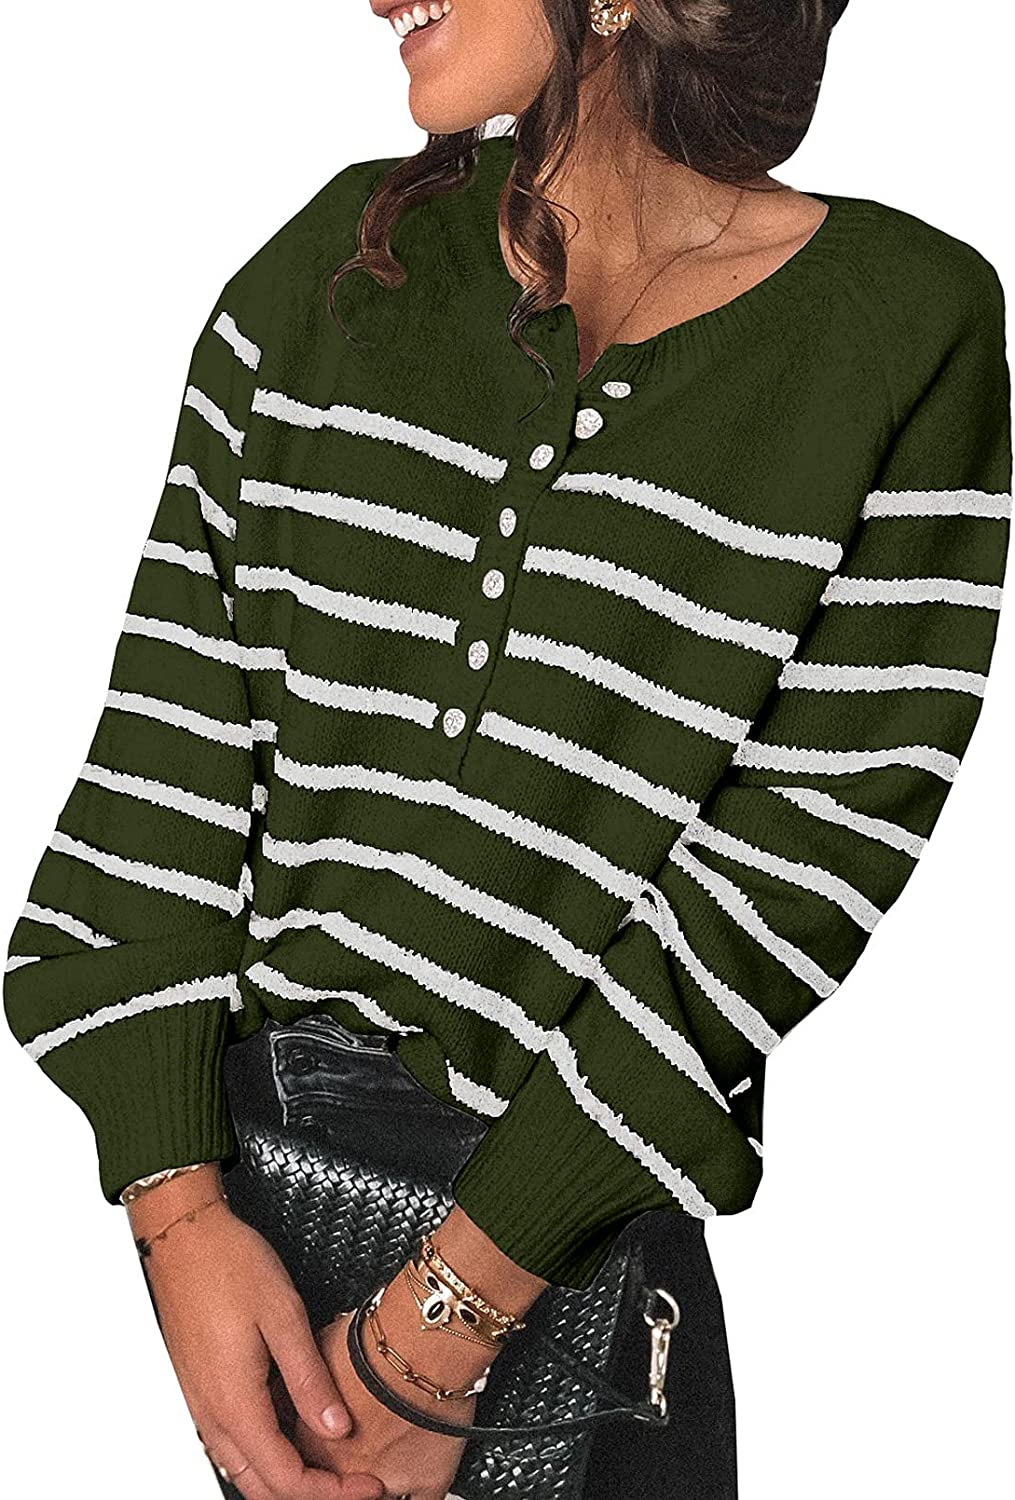 Dokotoo Womens Turtleneck Button Long Sleeve Pullovers Sweaters Loose Knit Jumpers Tops